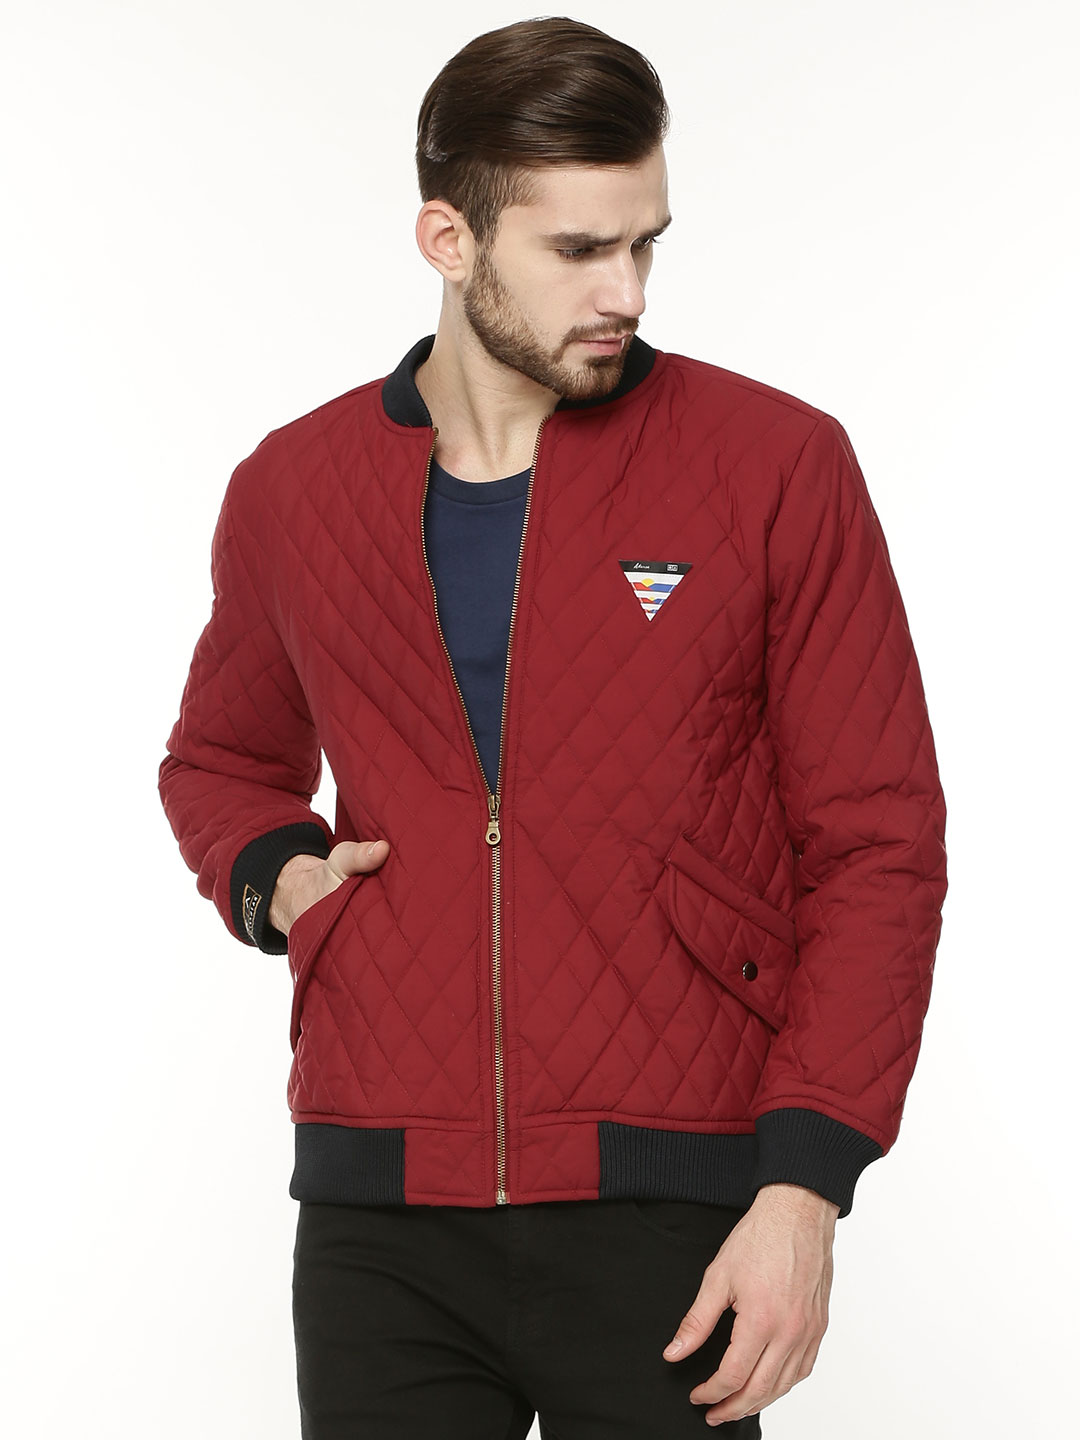 Atorse Quilted Jacket With Bas...